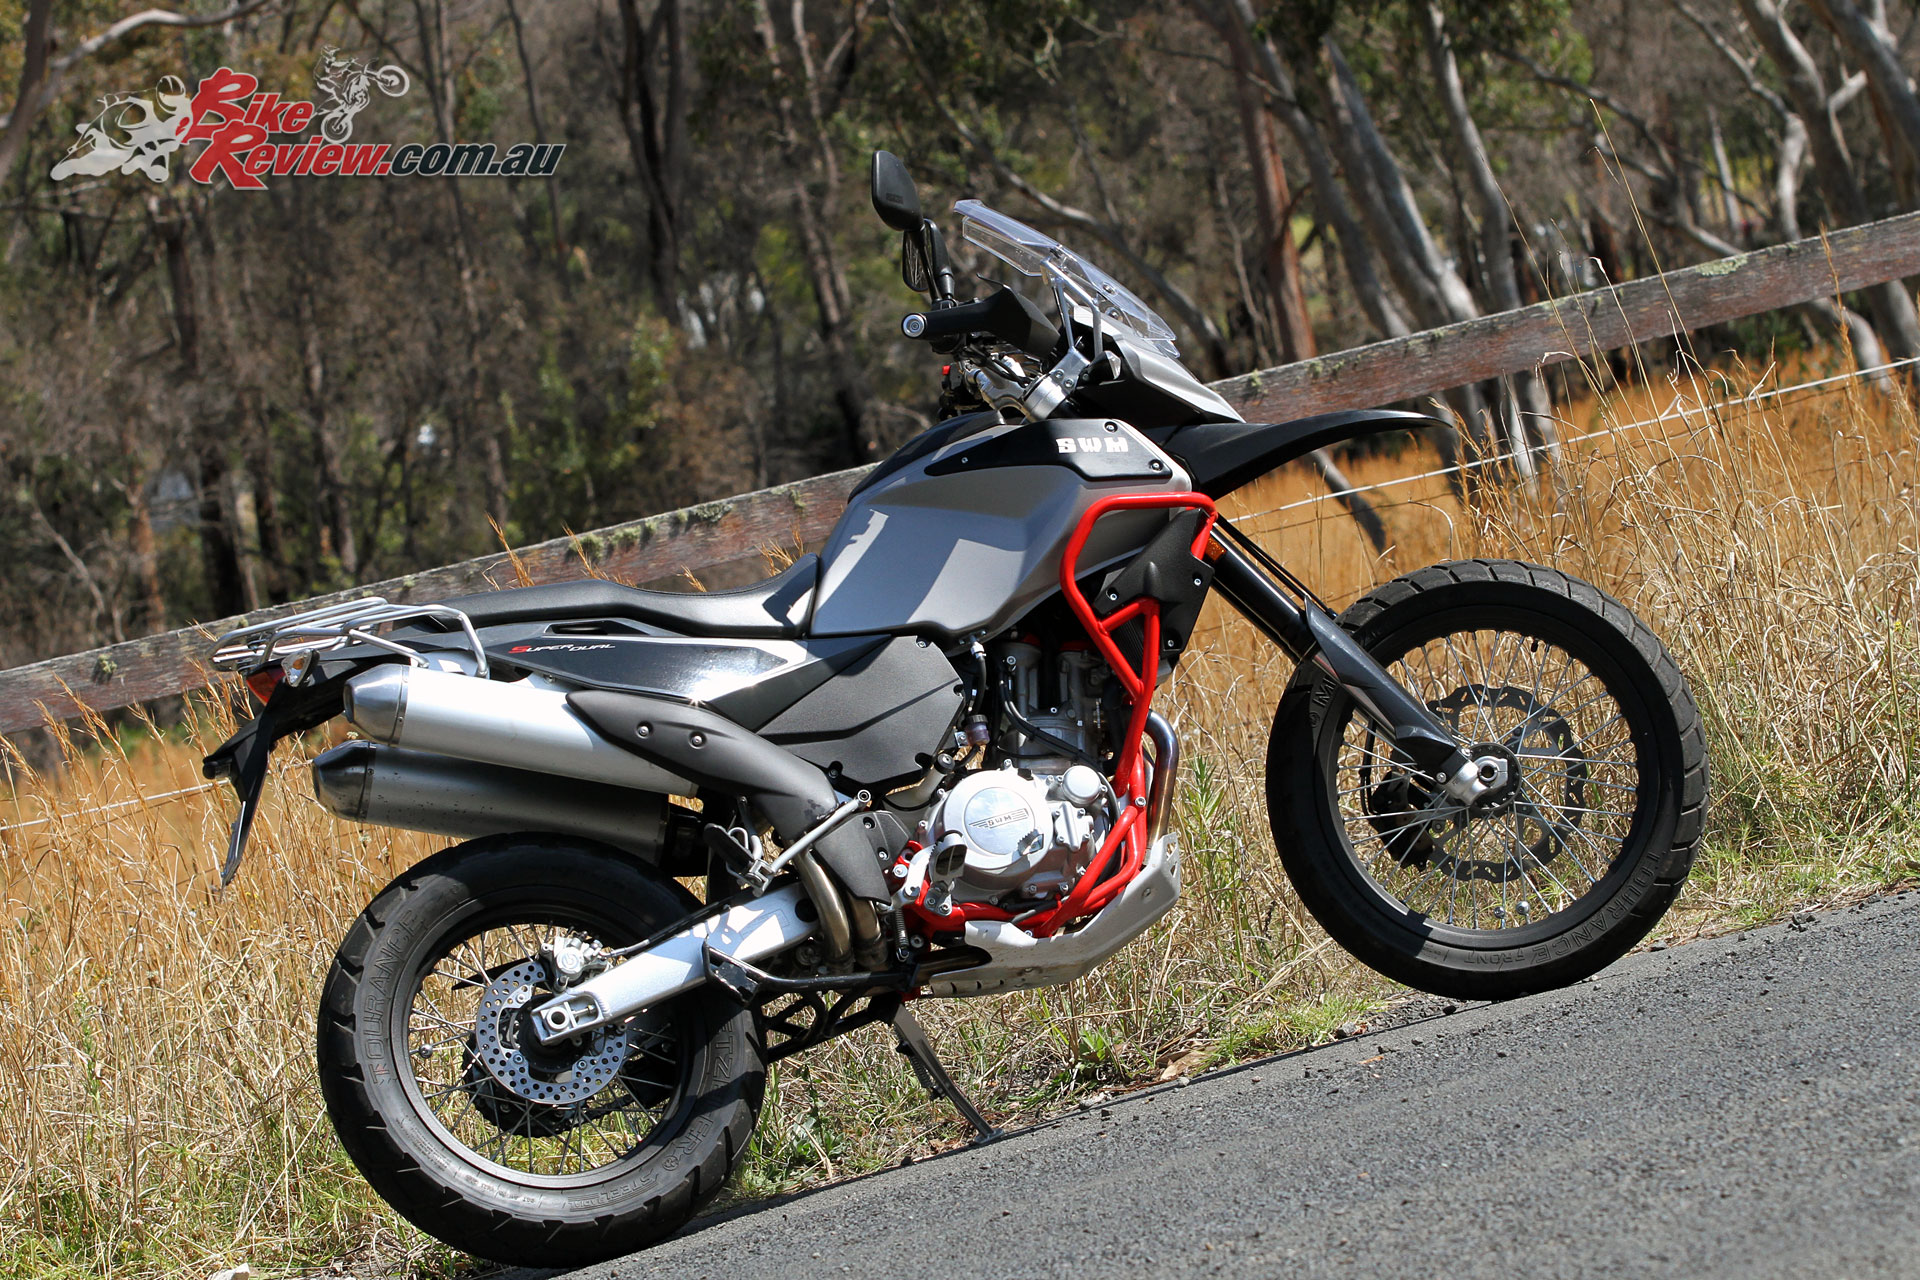 SWM's 650 SuperDual is the road going variant and is LAMS legal